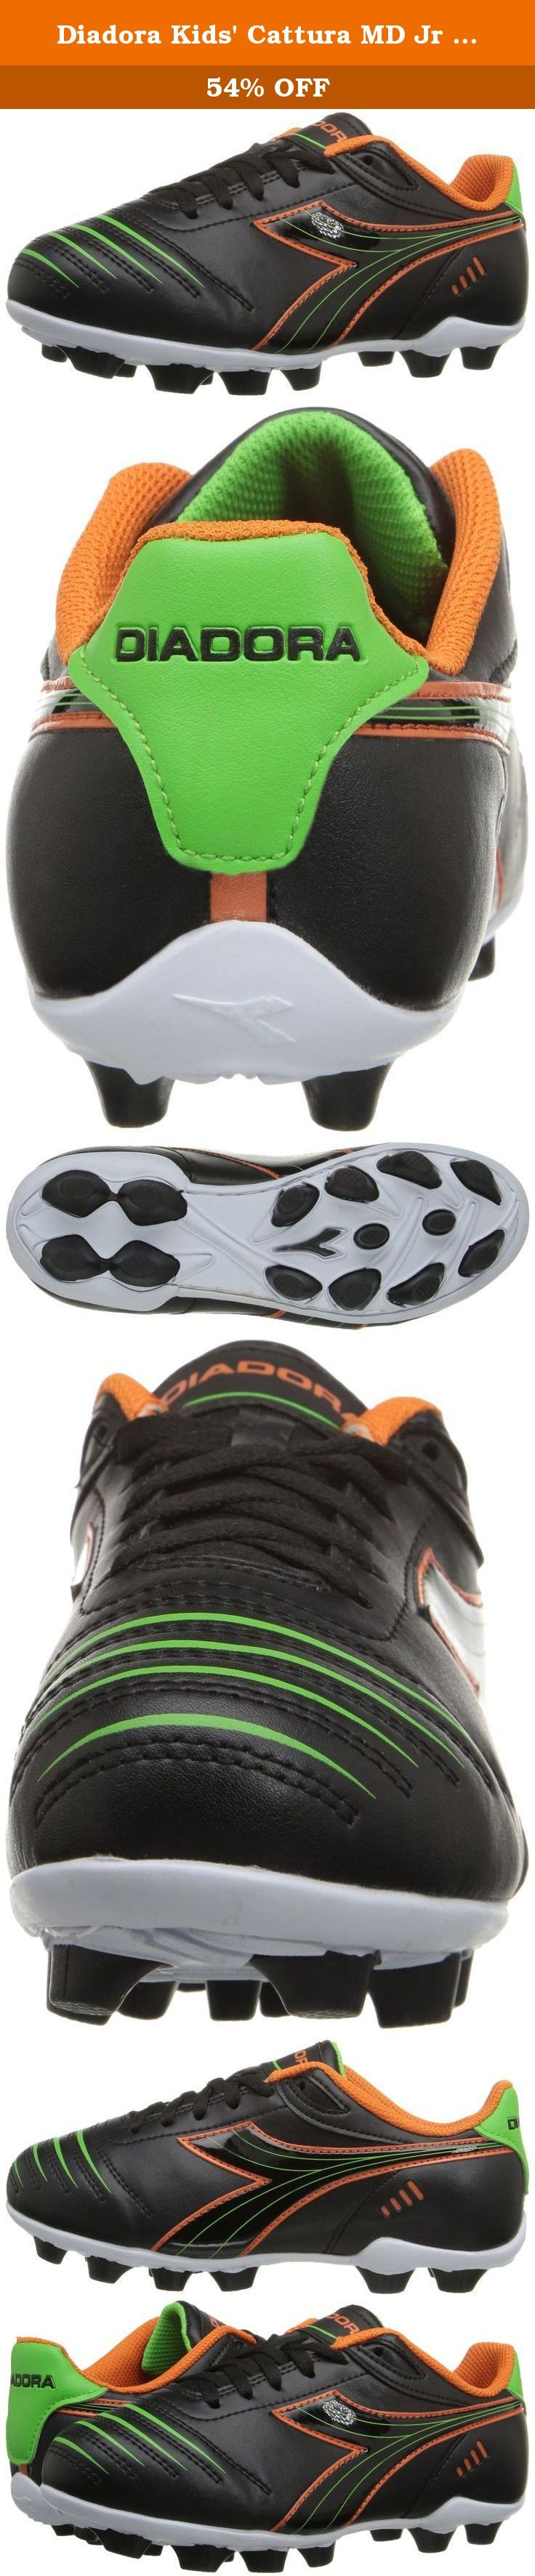 Diadora Kids' Cattura MD Jr Soccer Shoe, Black/Orange/Lime, 11 M US Little Kid. Soccer Cleat with rubber studs for traction and comfort.